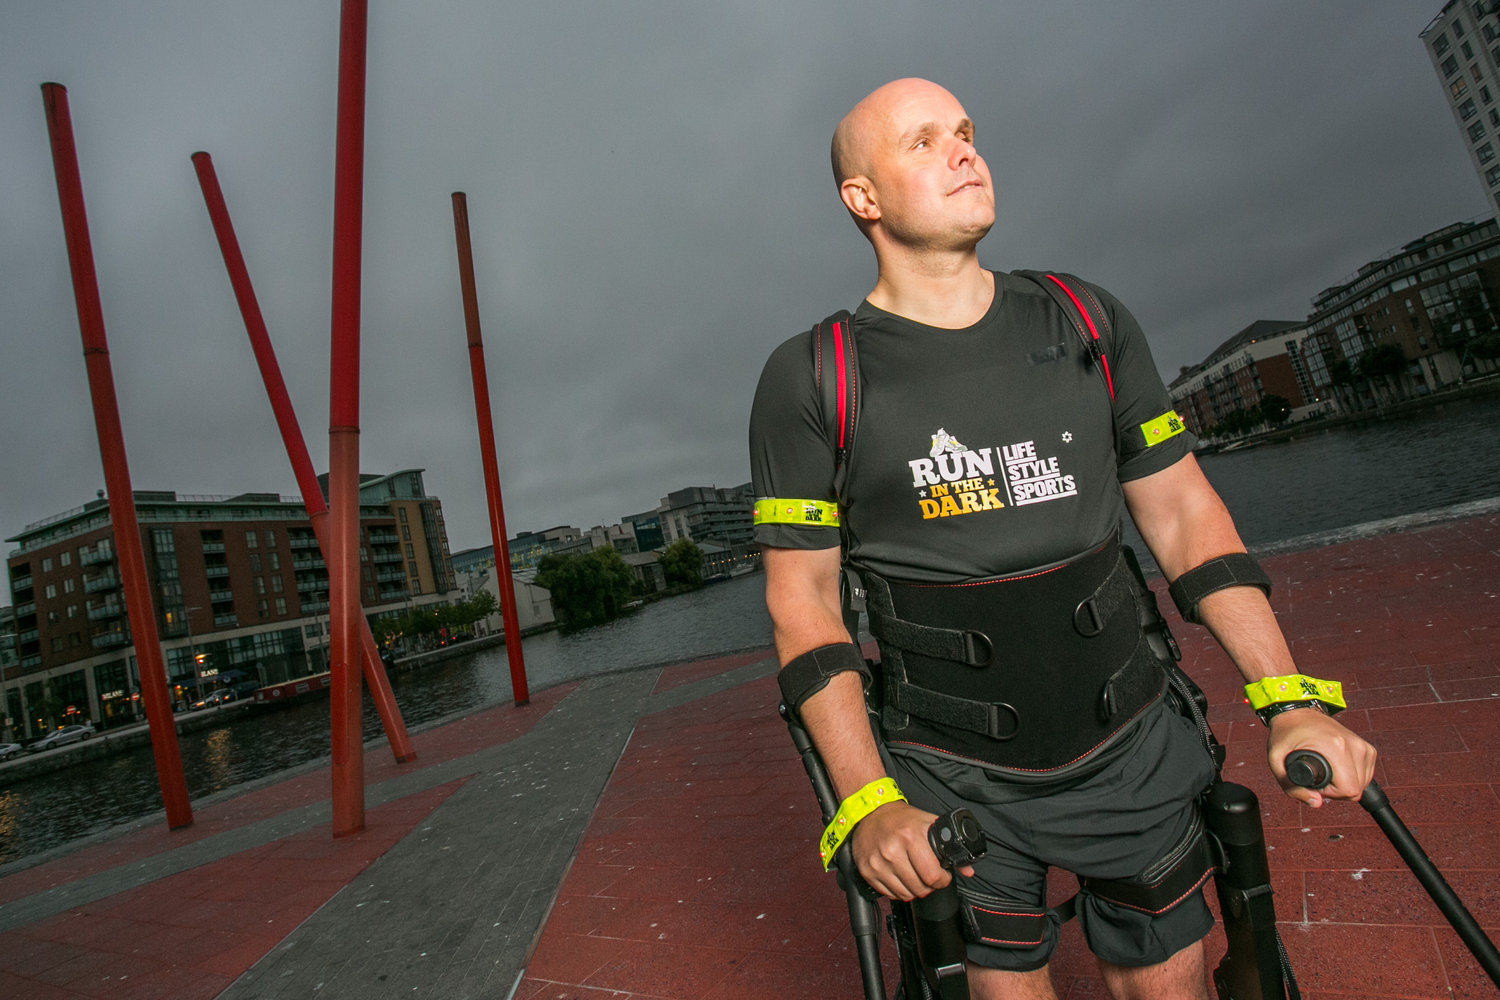 Blind Man Sues Friends After Falling Out Of Their Window mark pollock